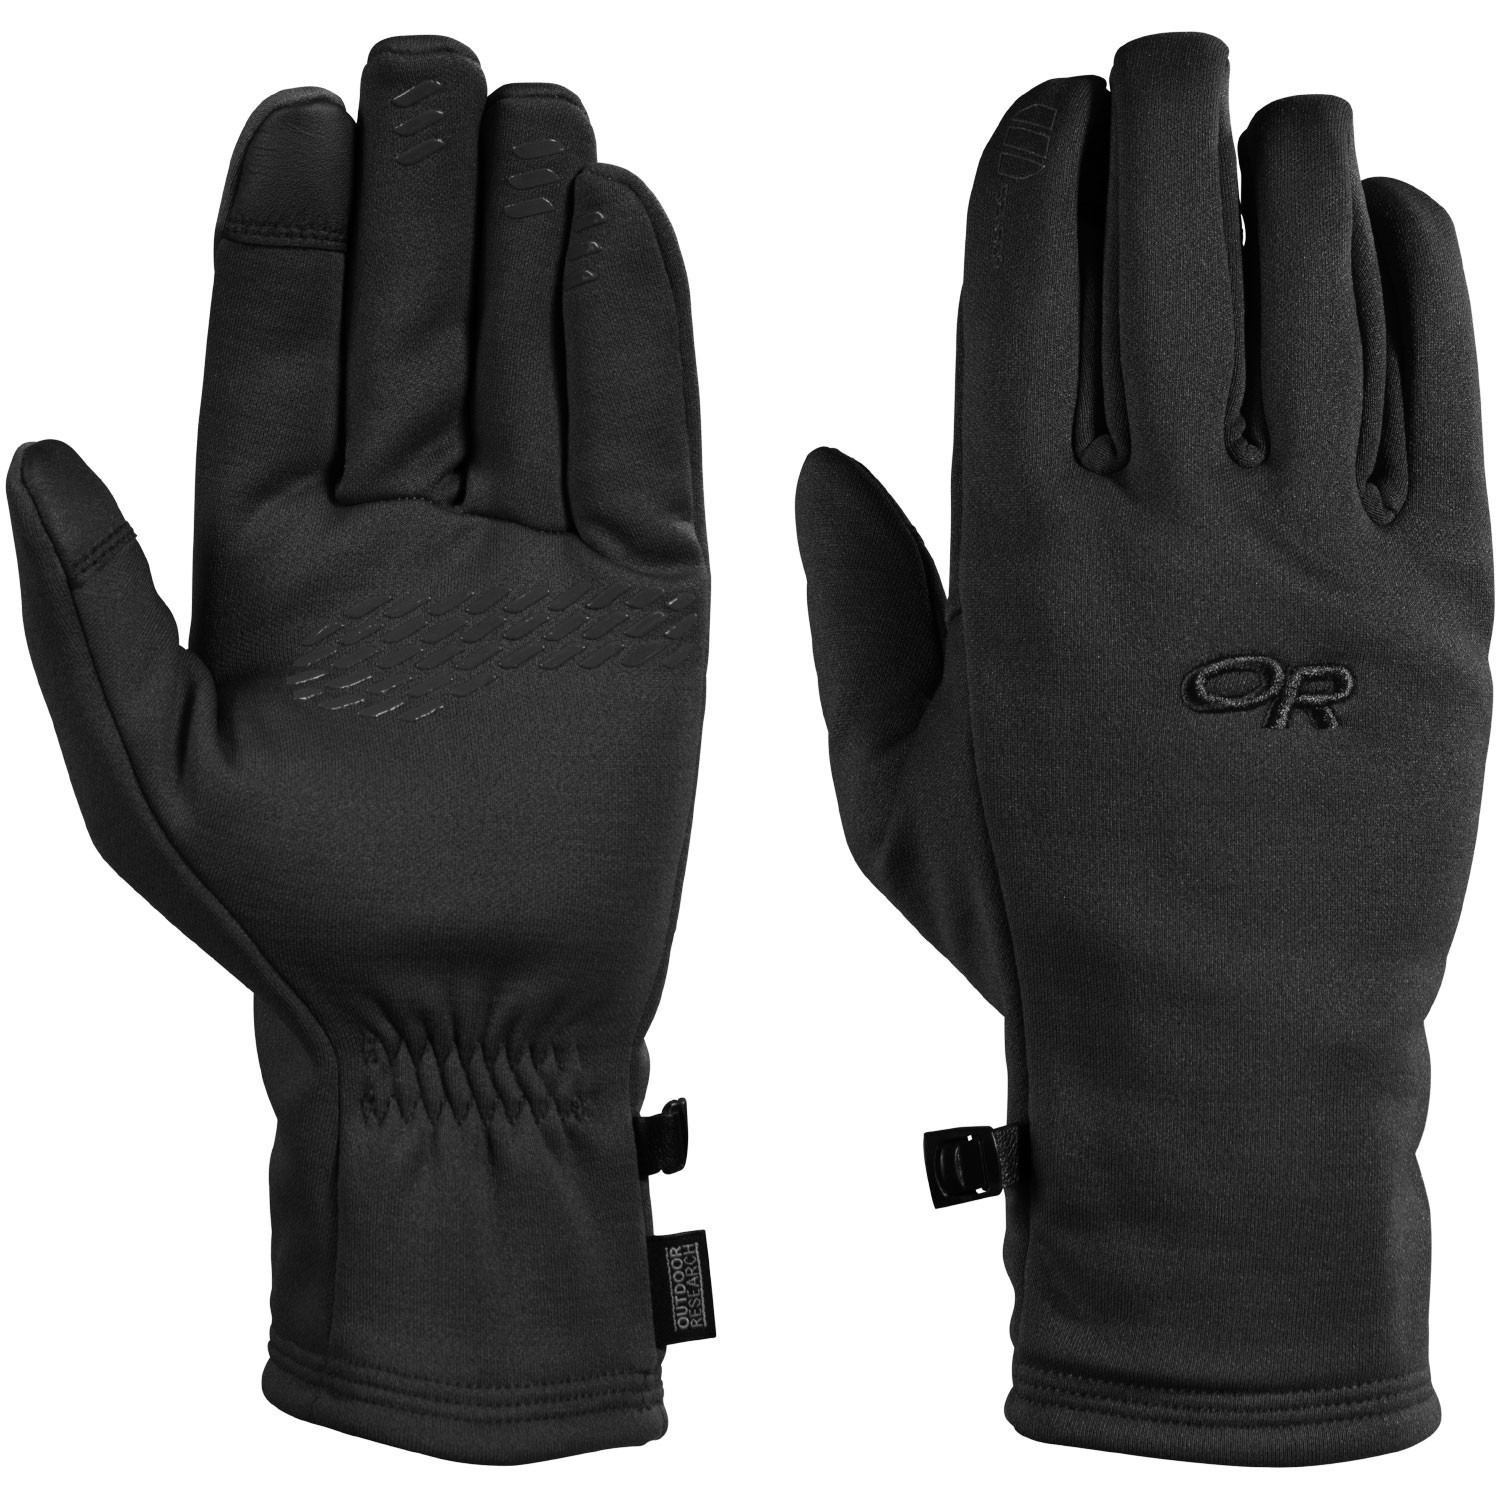 Outdoor Research Backstop Sensor Men's Gloves - Black